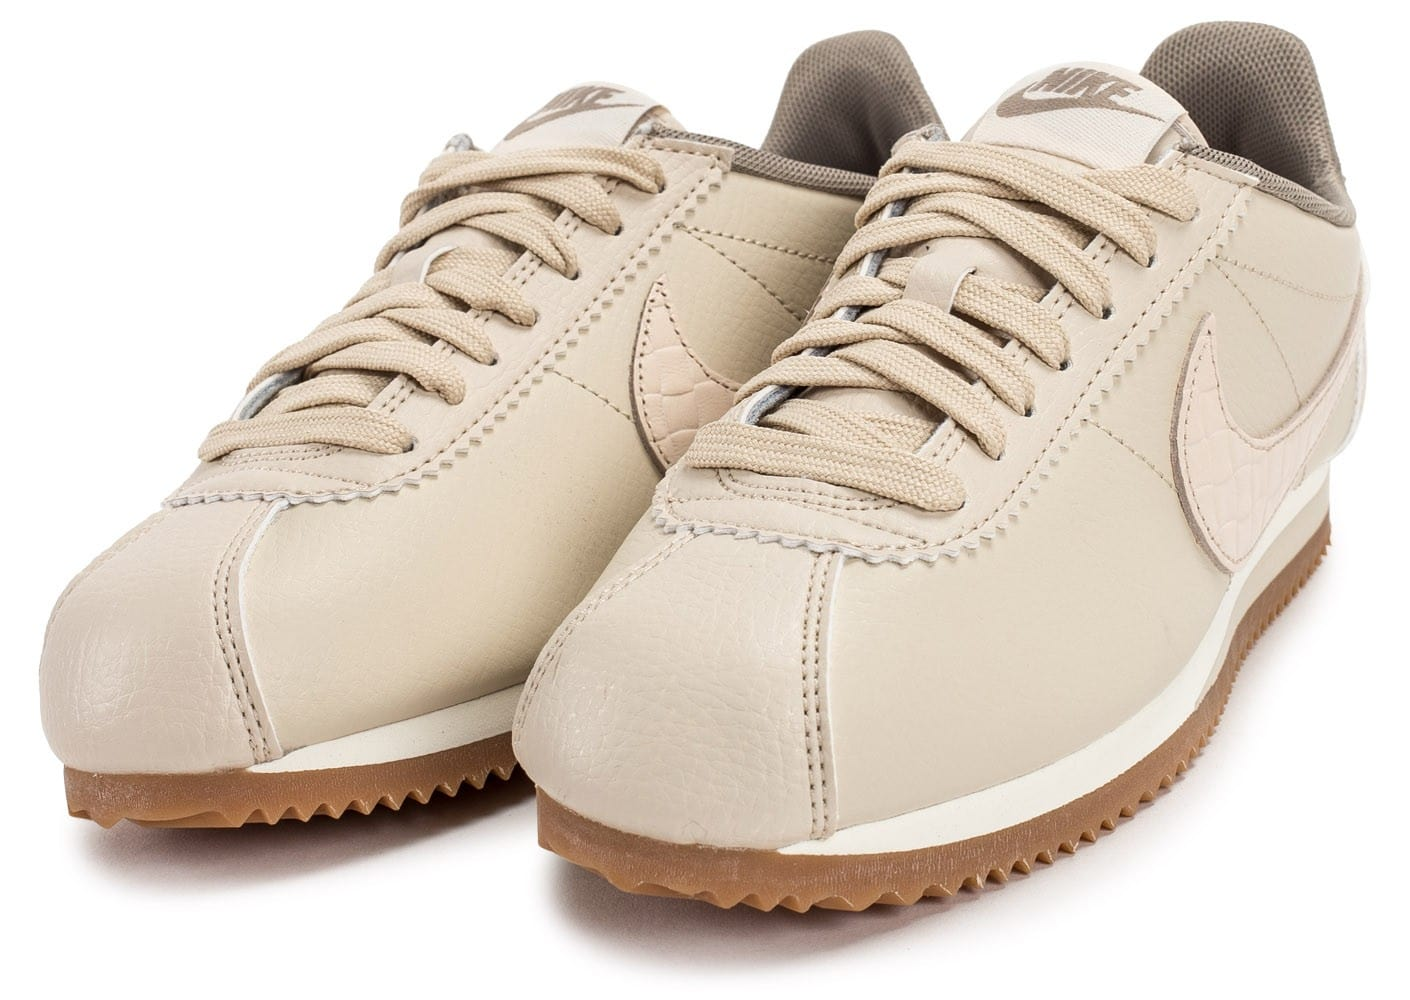 nike classic cortez leather lux beige chaussures pour. Black Bedroom Furniture Sets. Home Design Ideas